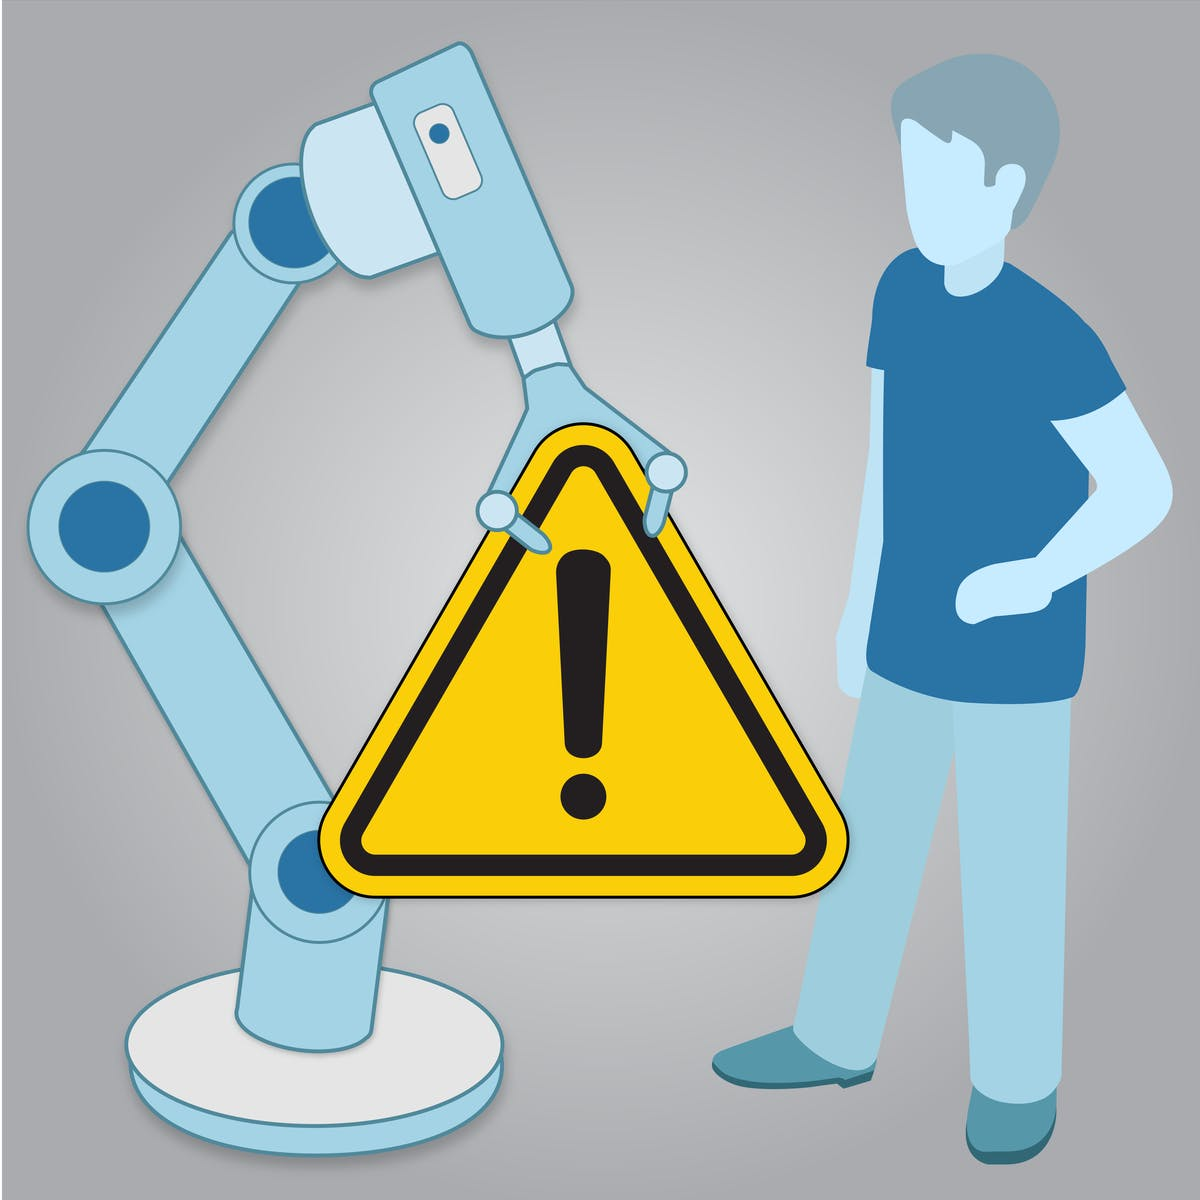 Collaborative Robot Safety: Design & Deployment